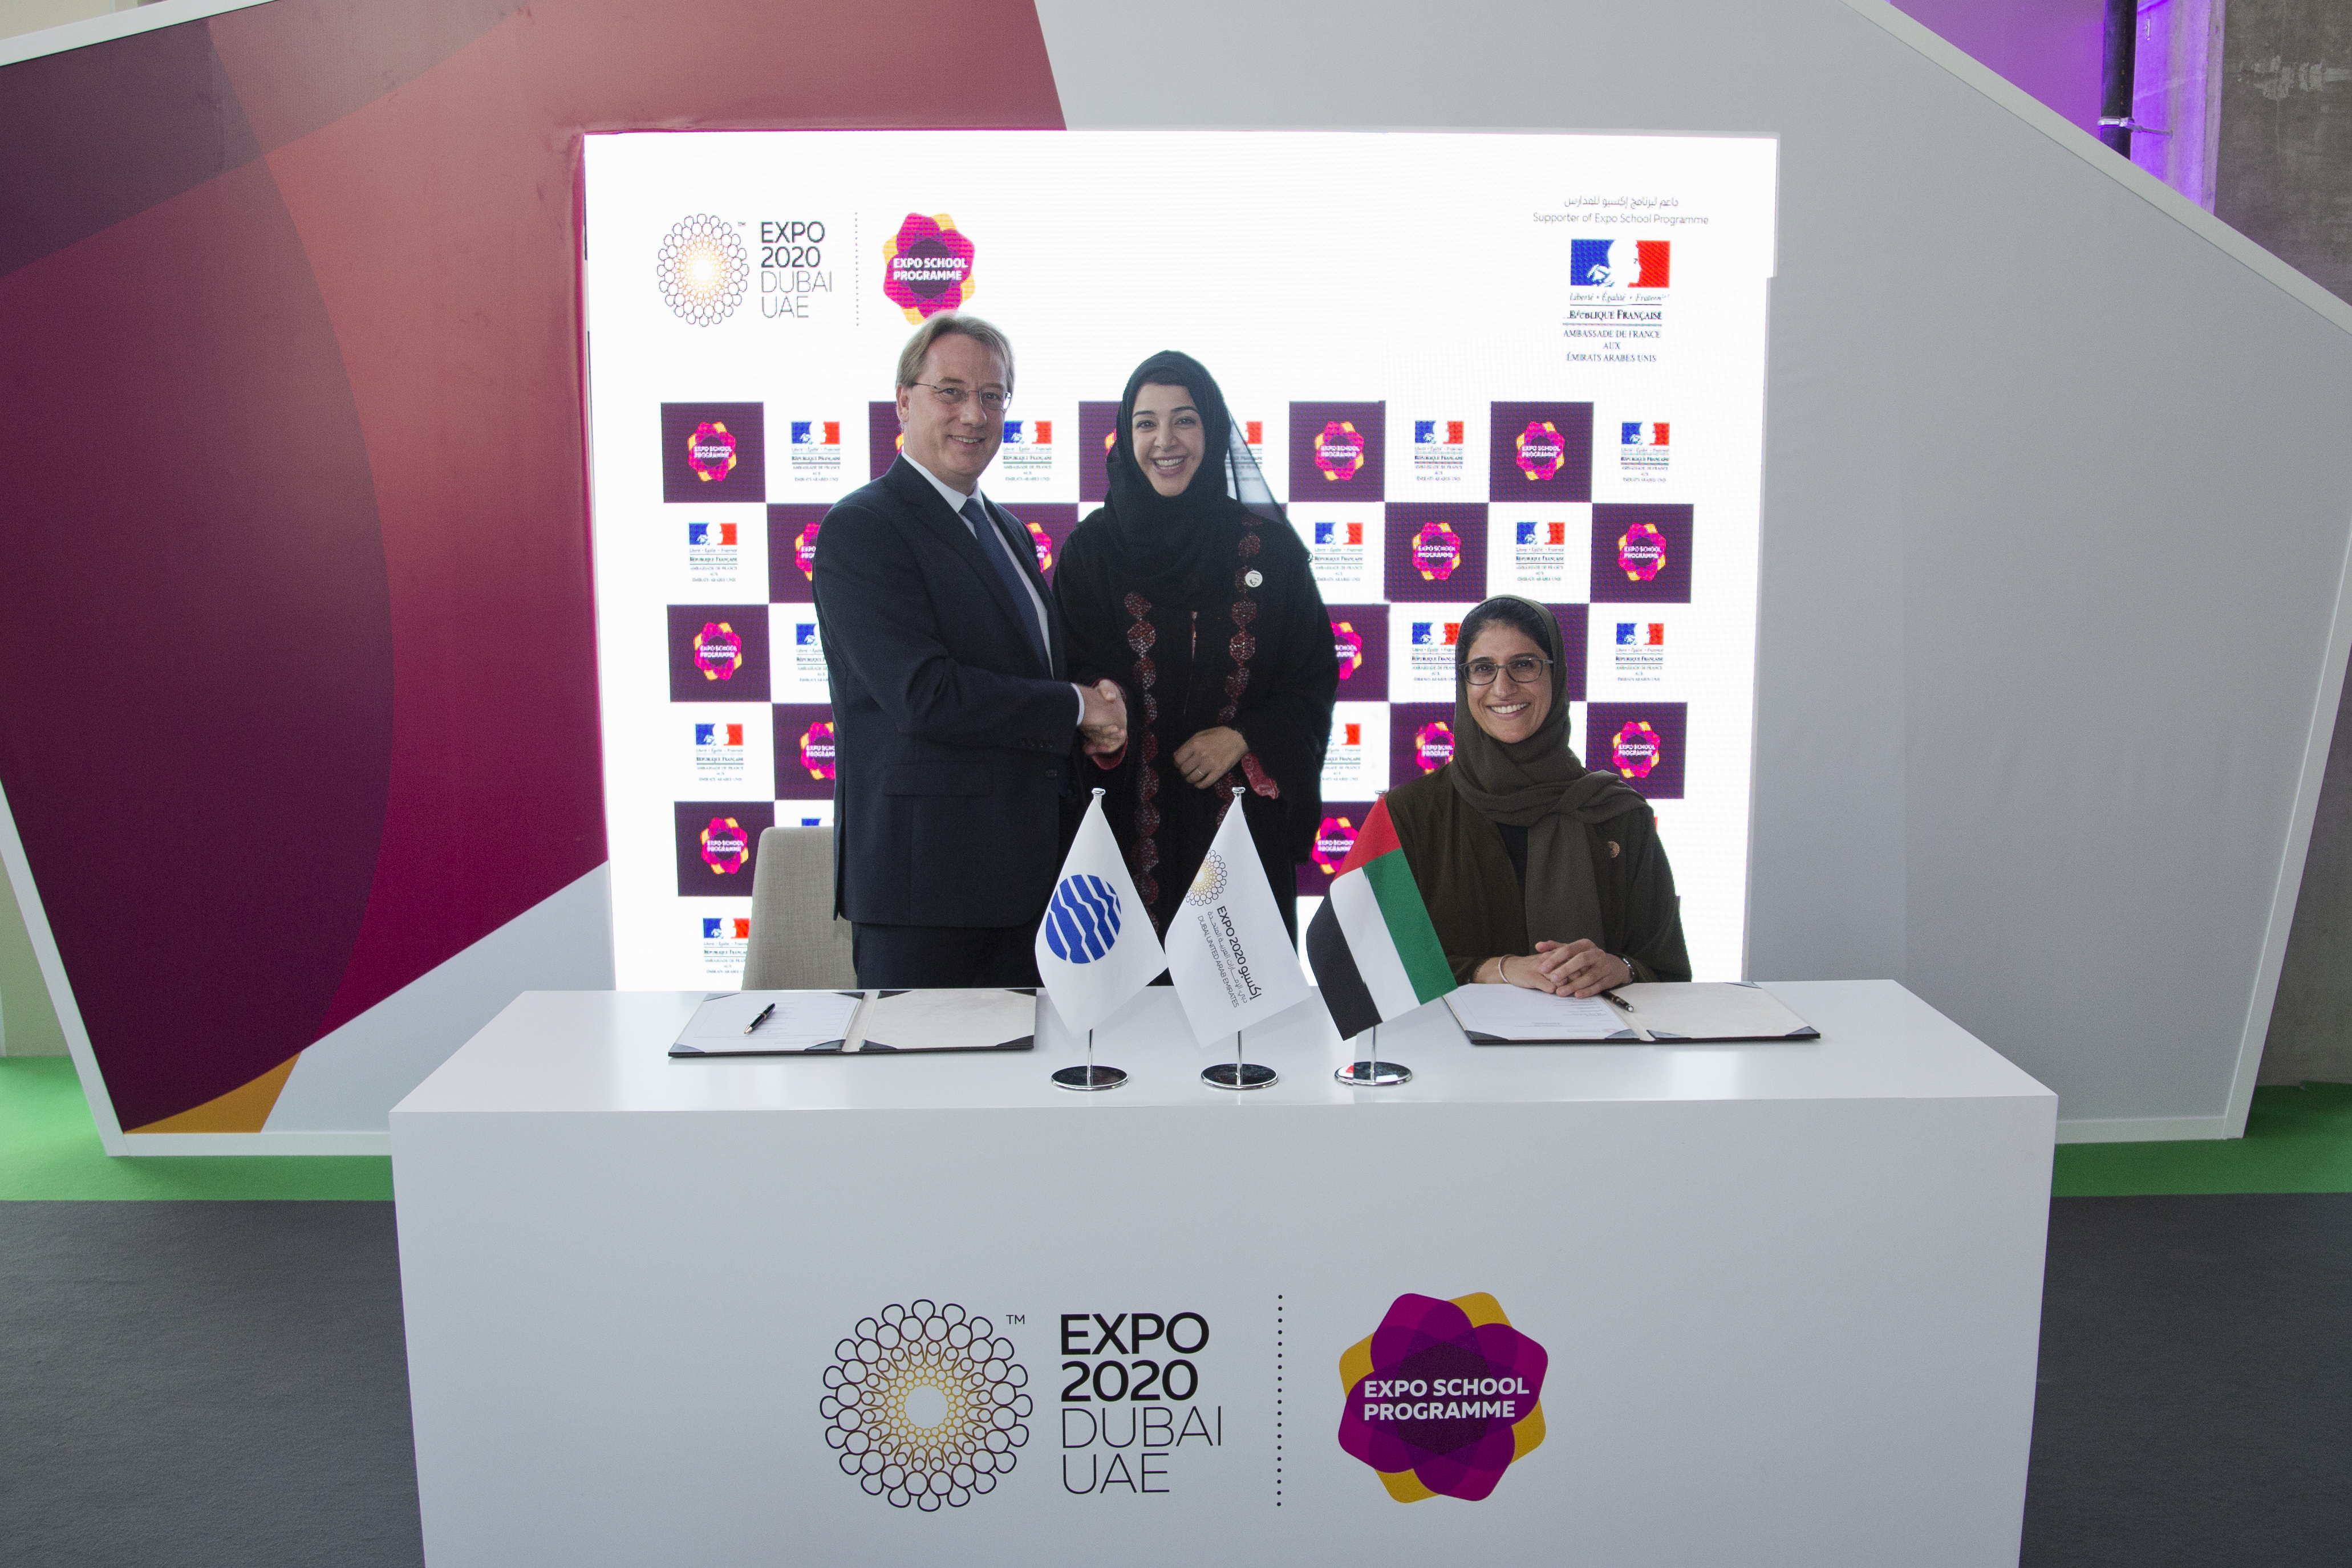 Educational tours set to wow students at EXPO 2020